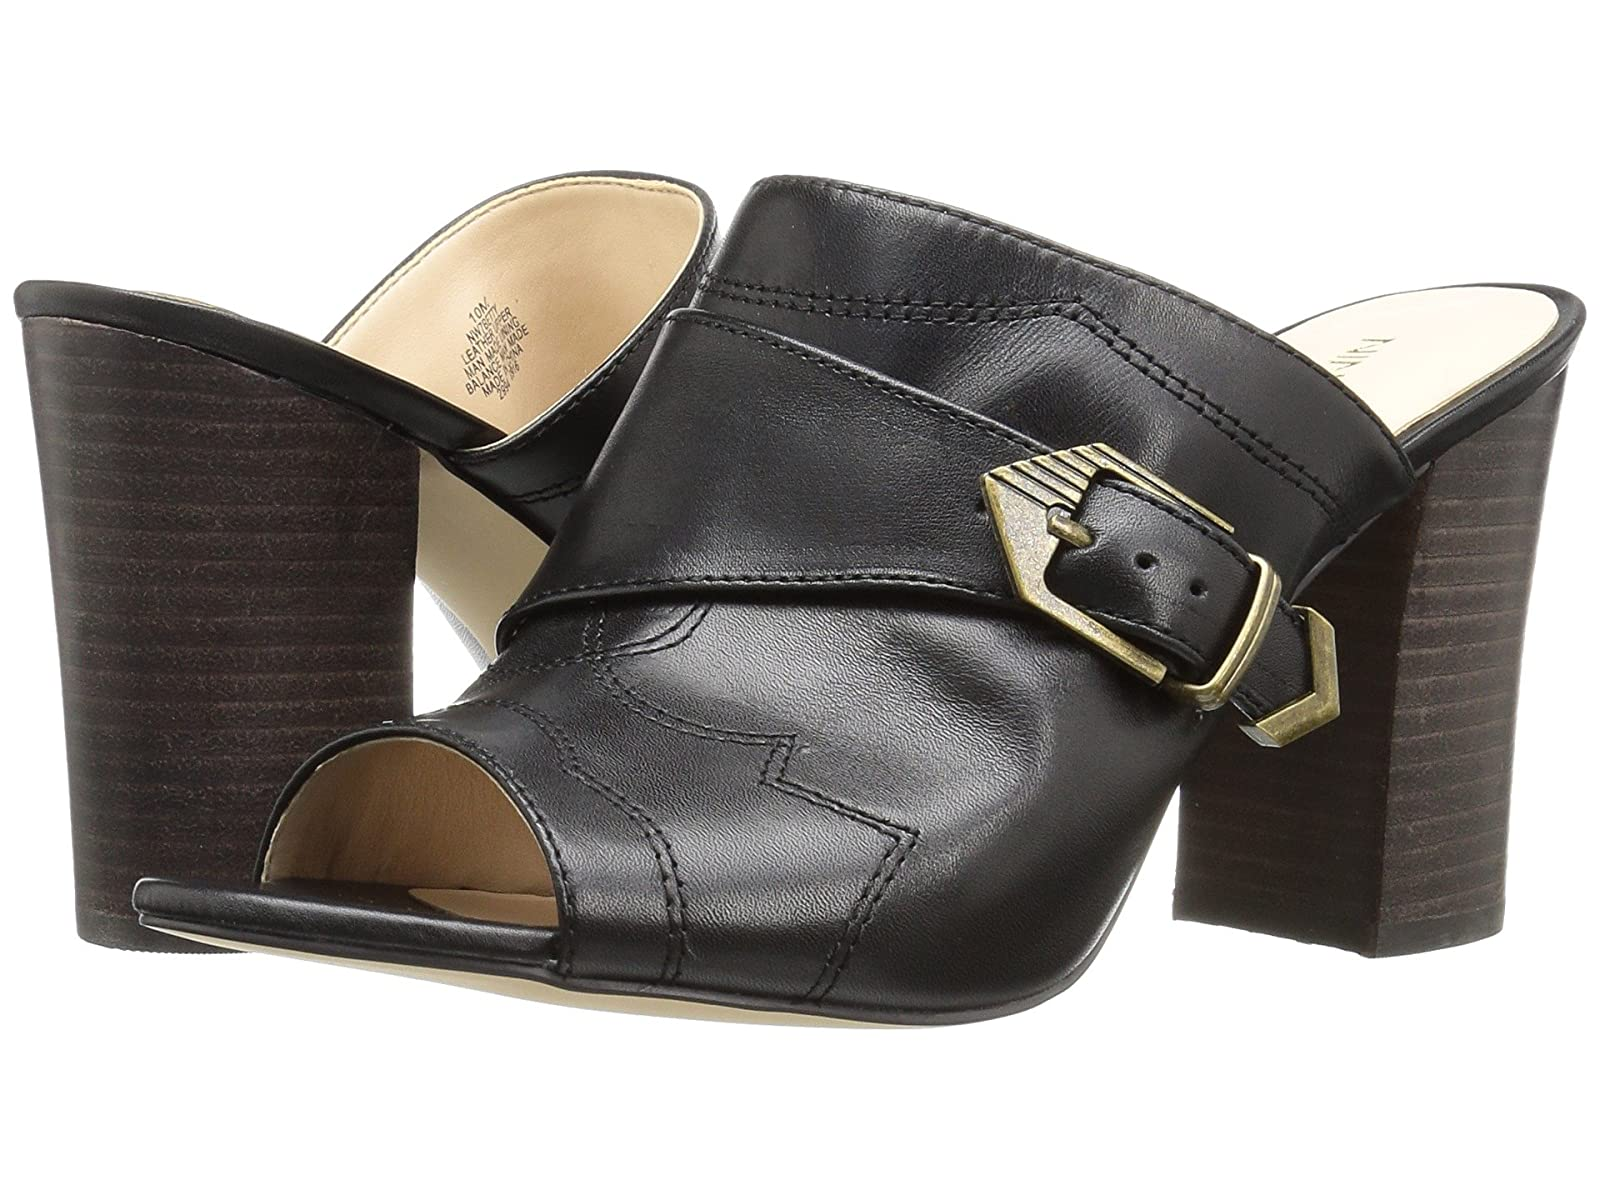 Nine West BettyCheap and distinctive eye-catching shoes